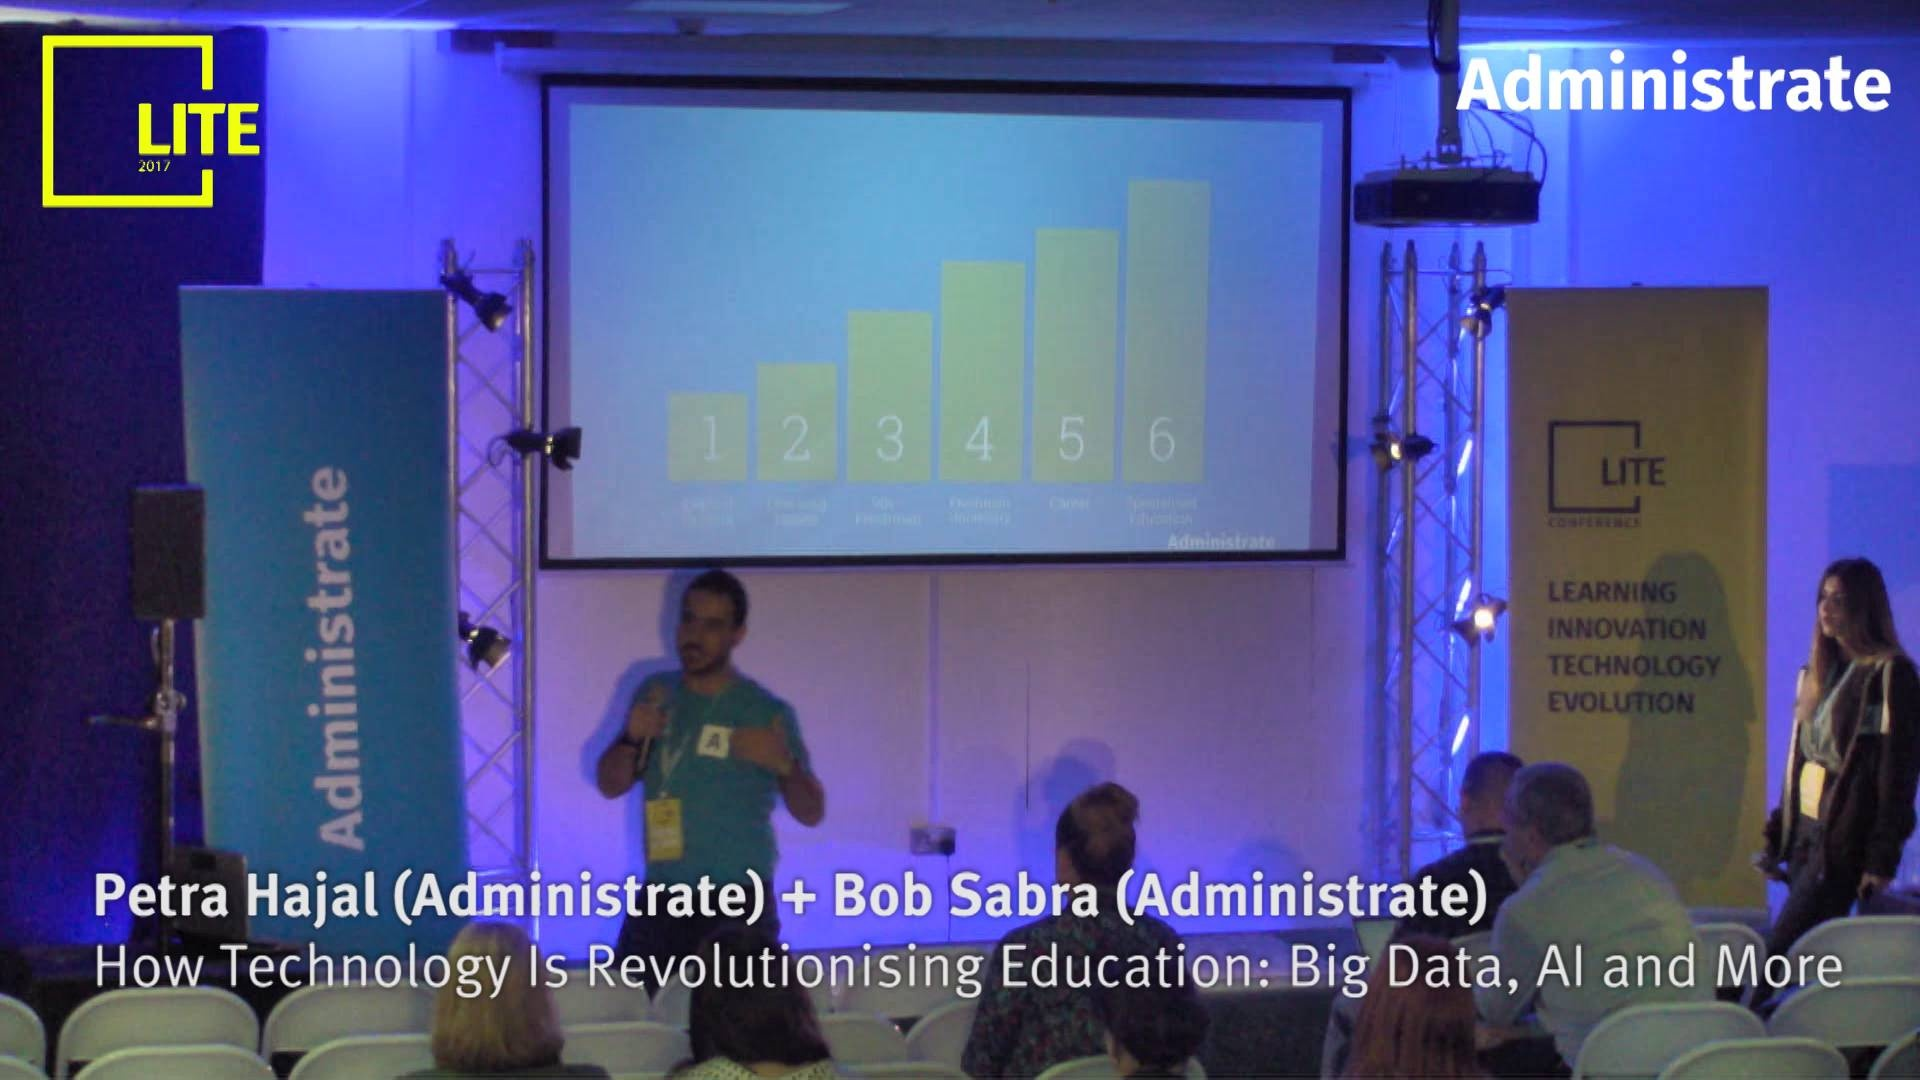 How Technology Is Revolutionising Education: Big Data, AI and More [Petra Hajal & Bob Sabra]